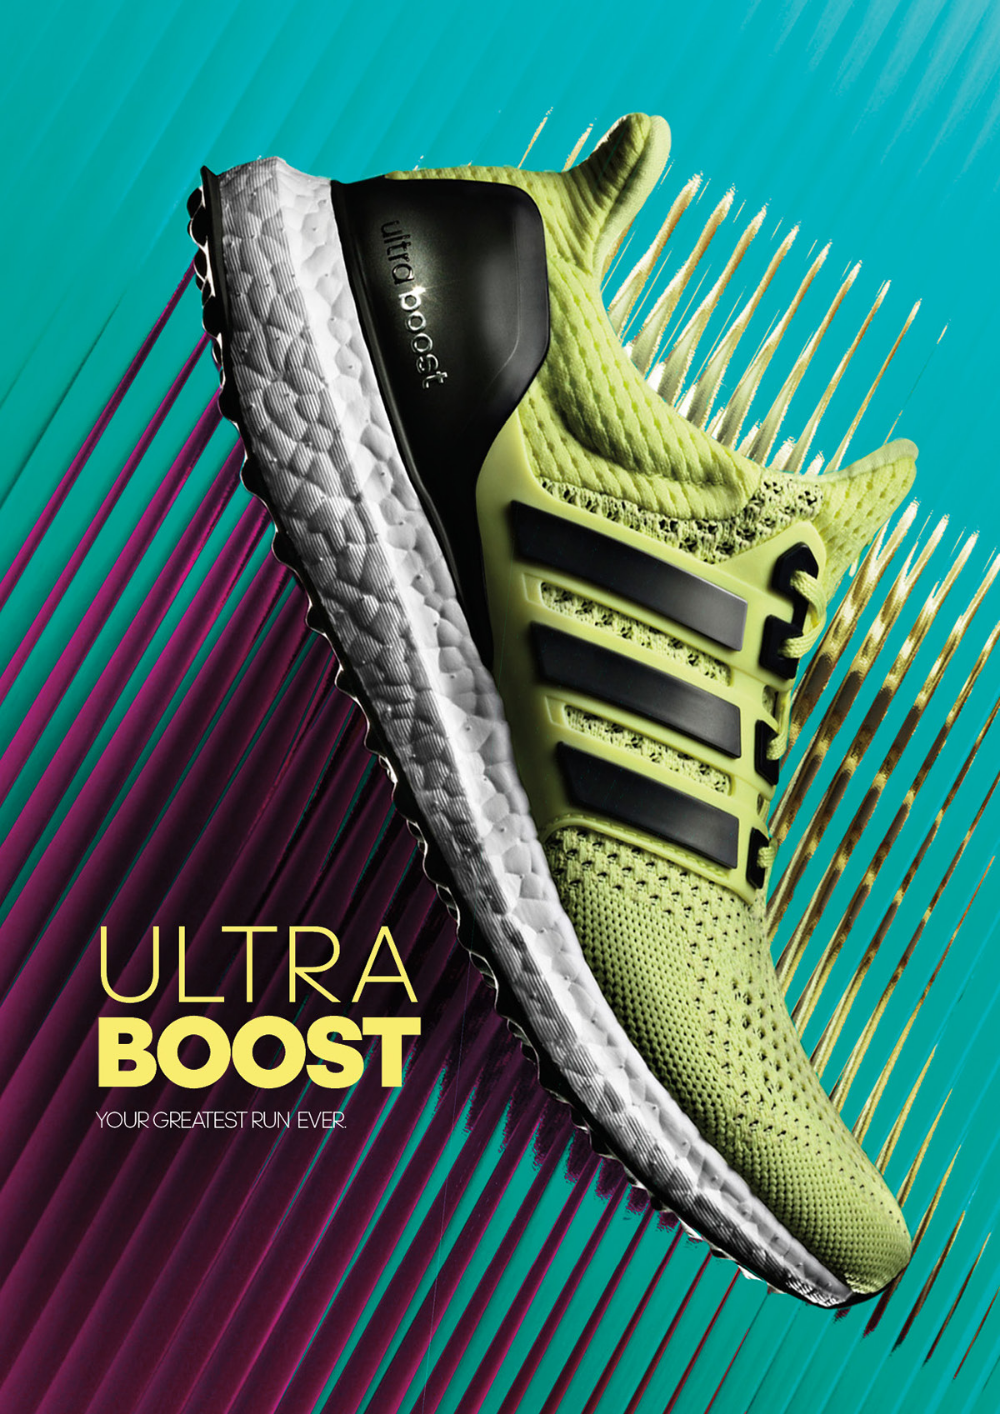 adidas Ultra Boost FW15 Energy Takes Over Campaign on